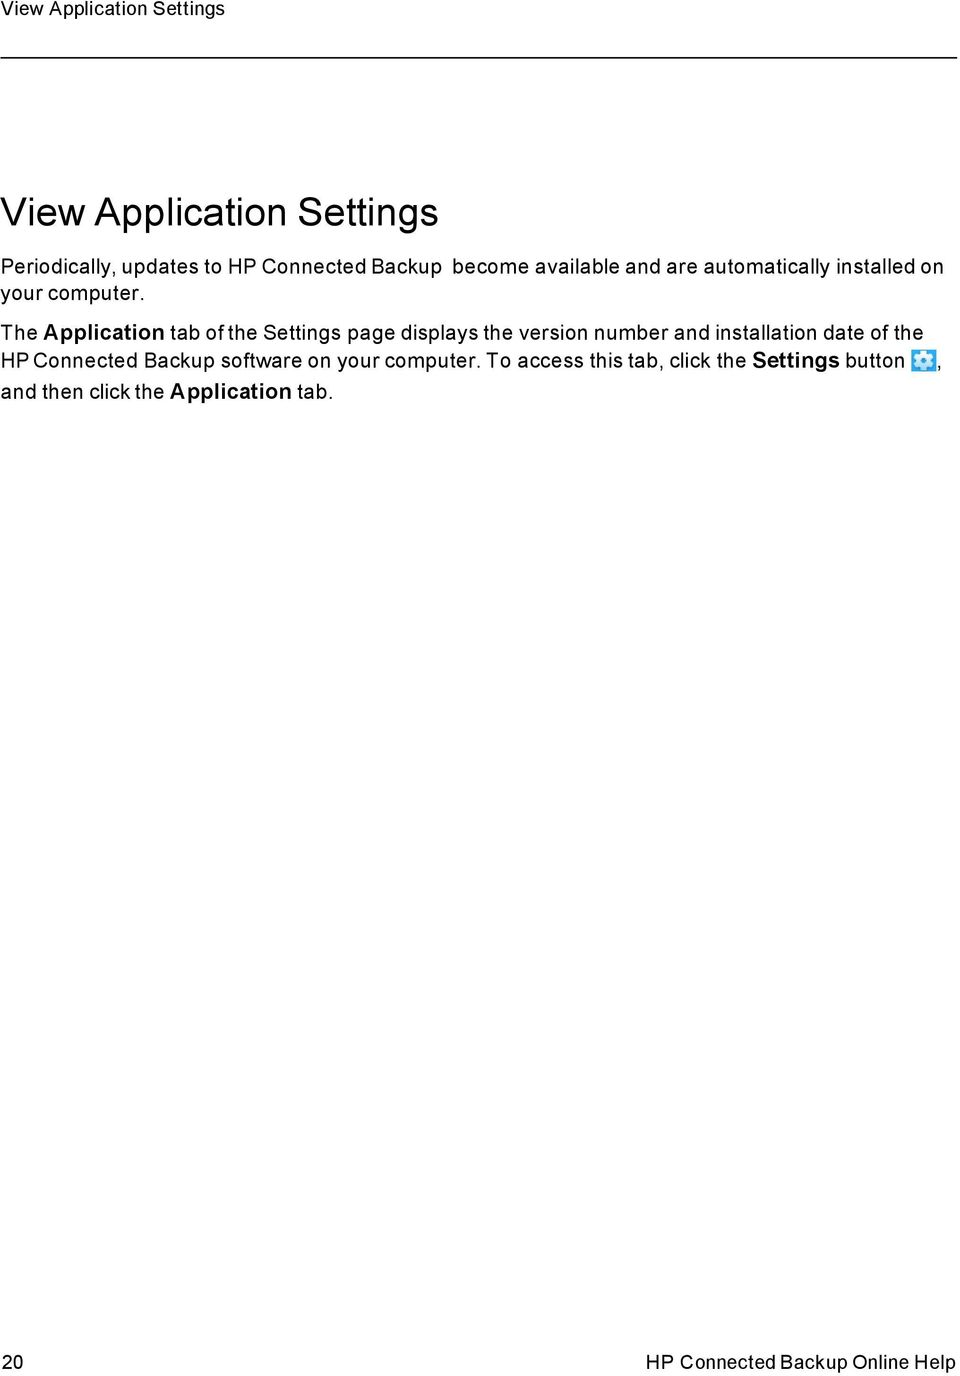 The Applicatin tab f the Settings page displays the versin number and installatin date f the HP